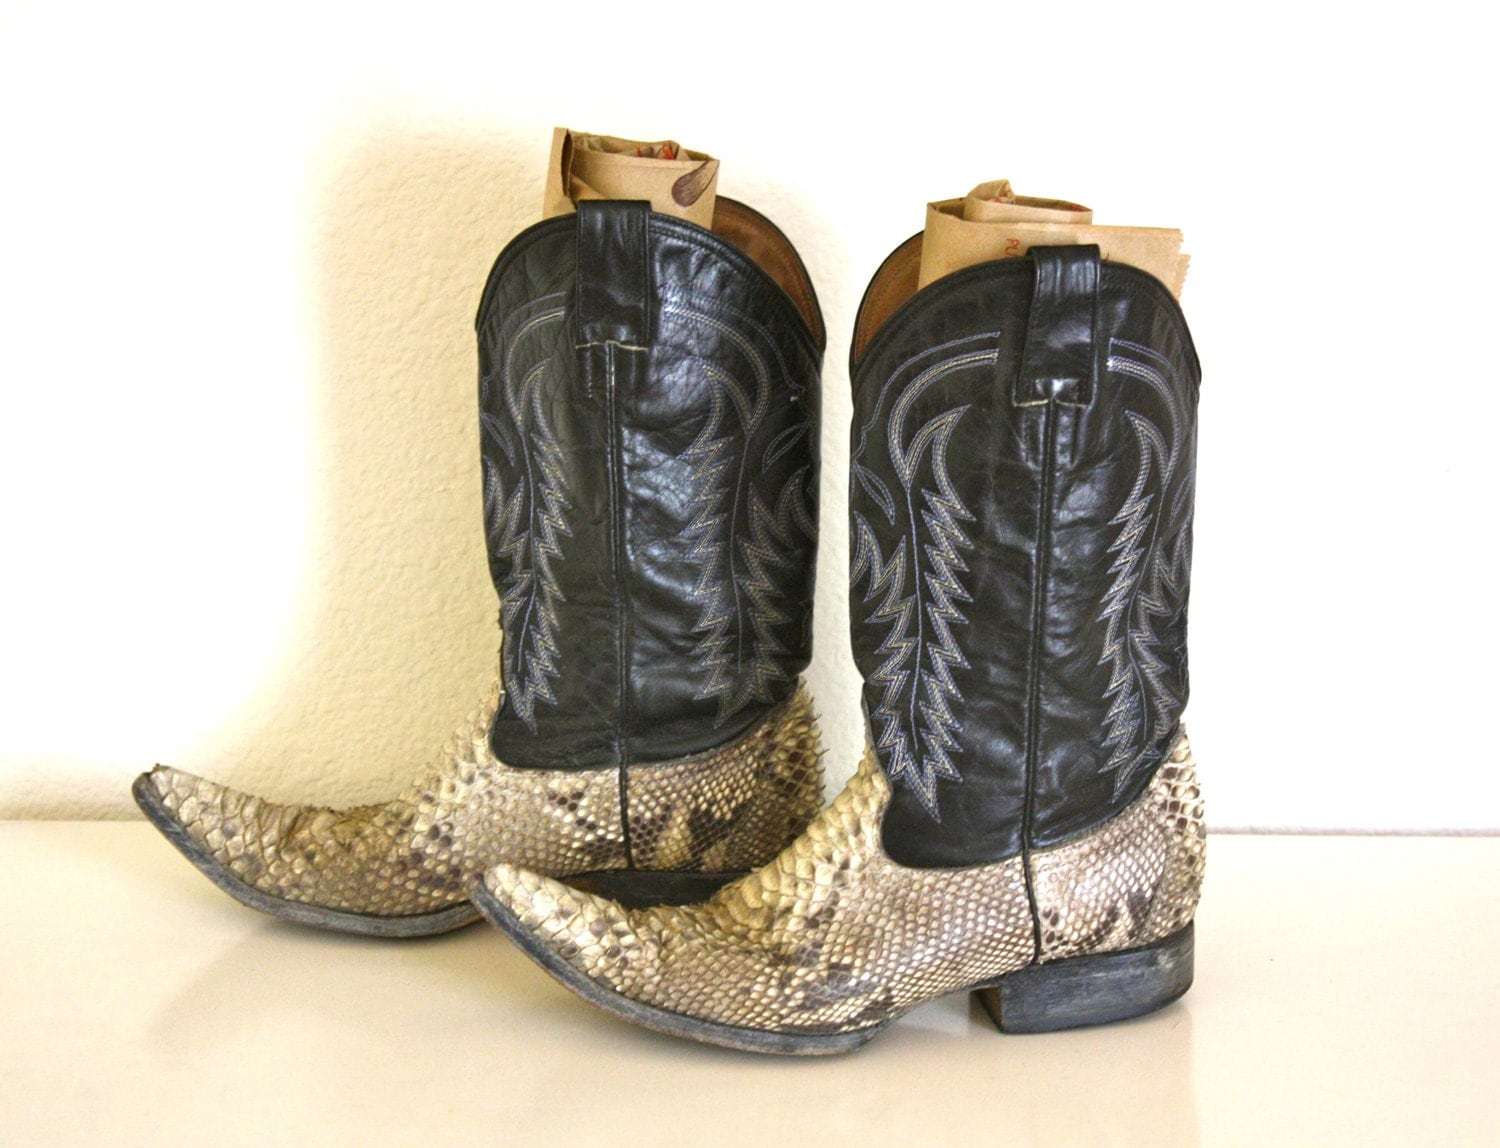 VTG 9 Mens Snakeskin Mexican Pointy toe Cowboy Boots